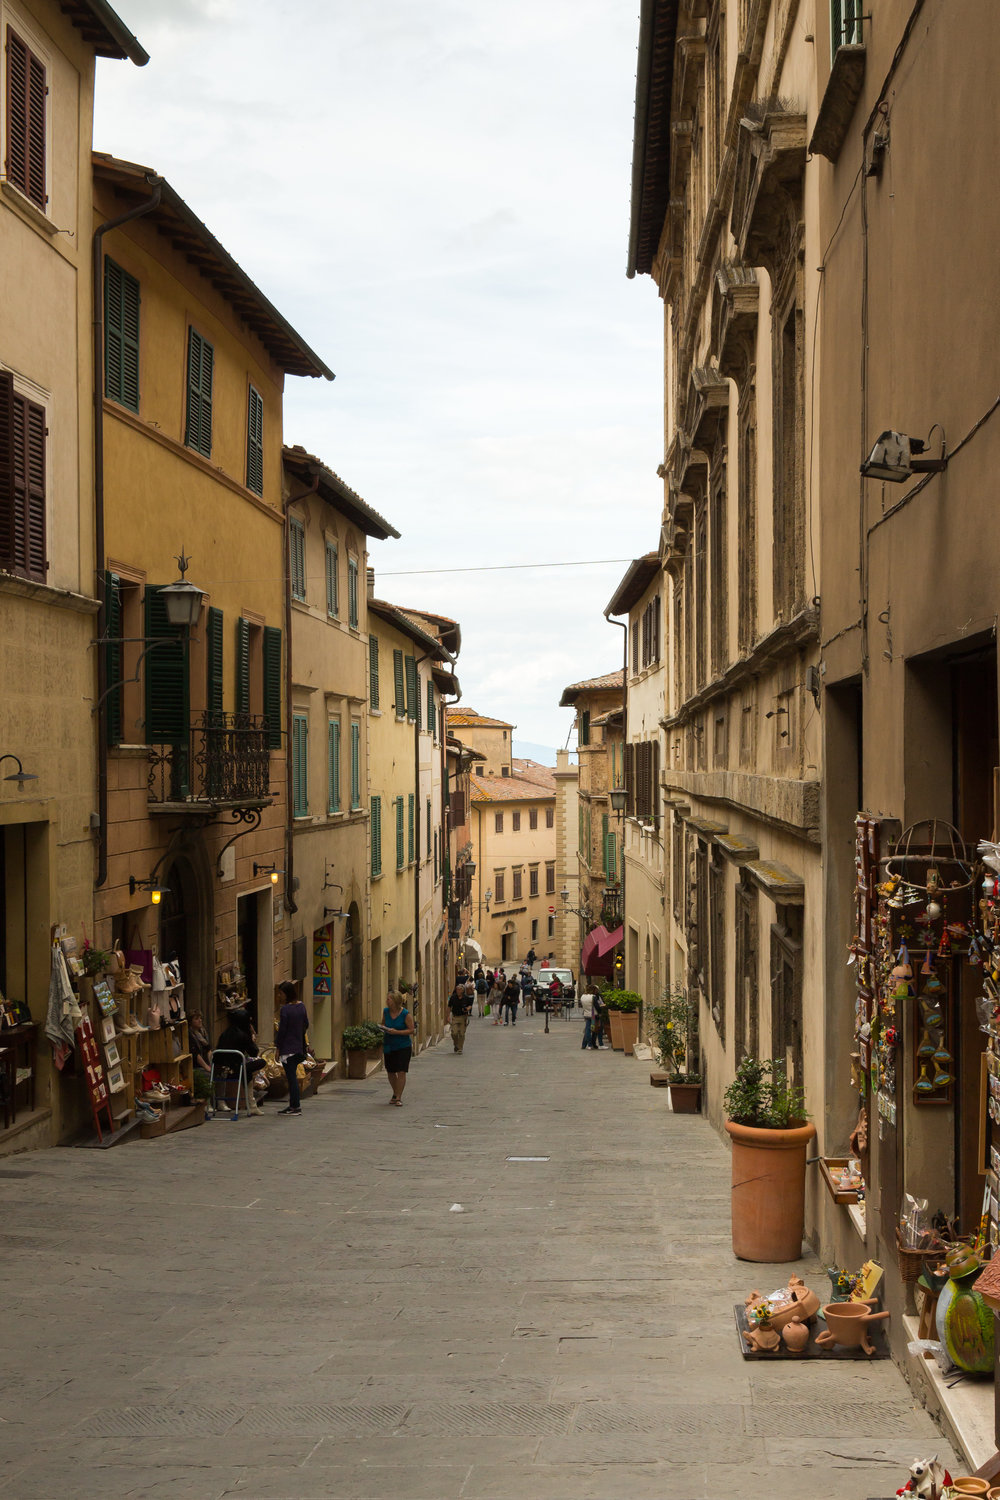 The streets in Montepulciano